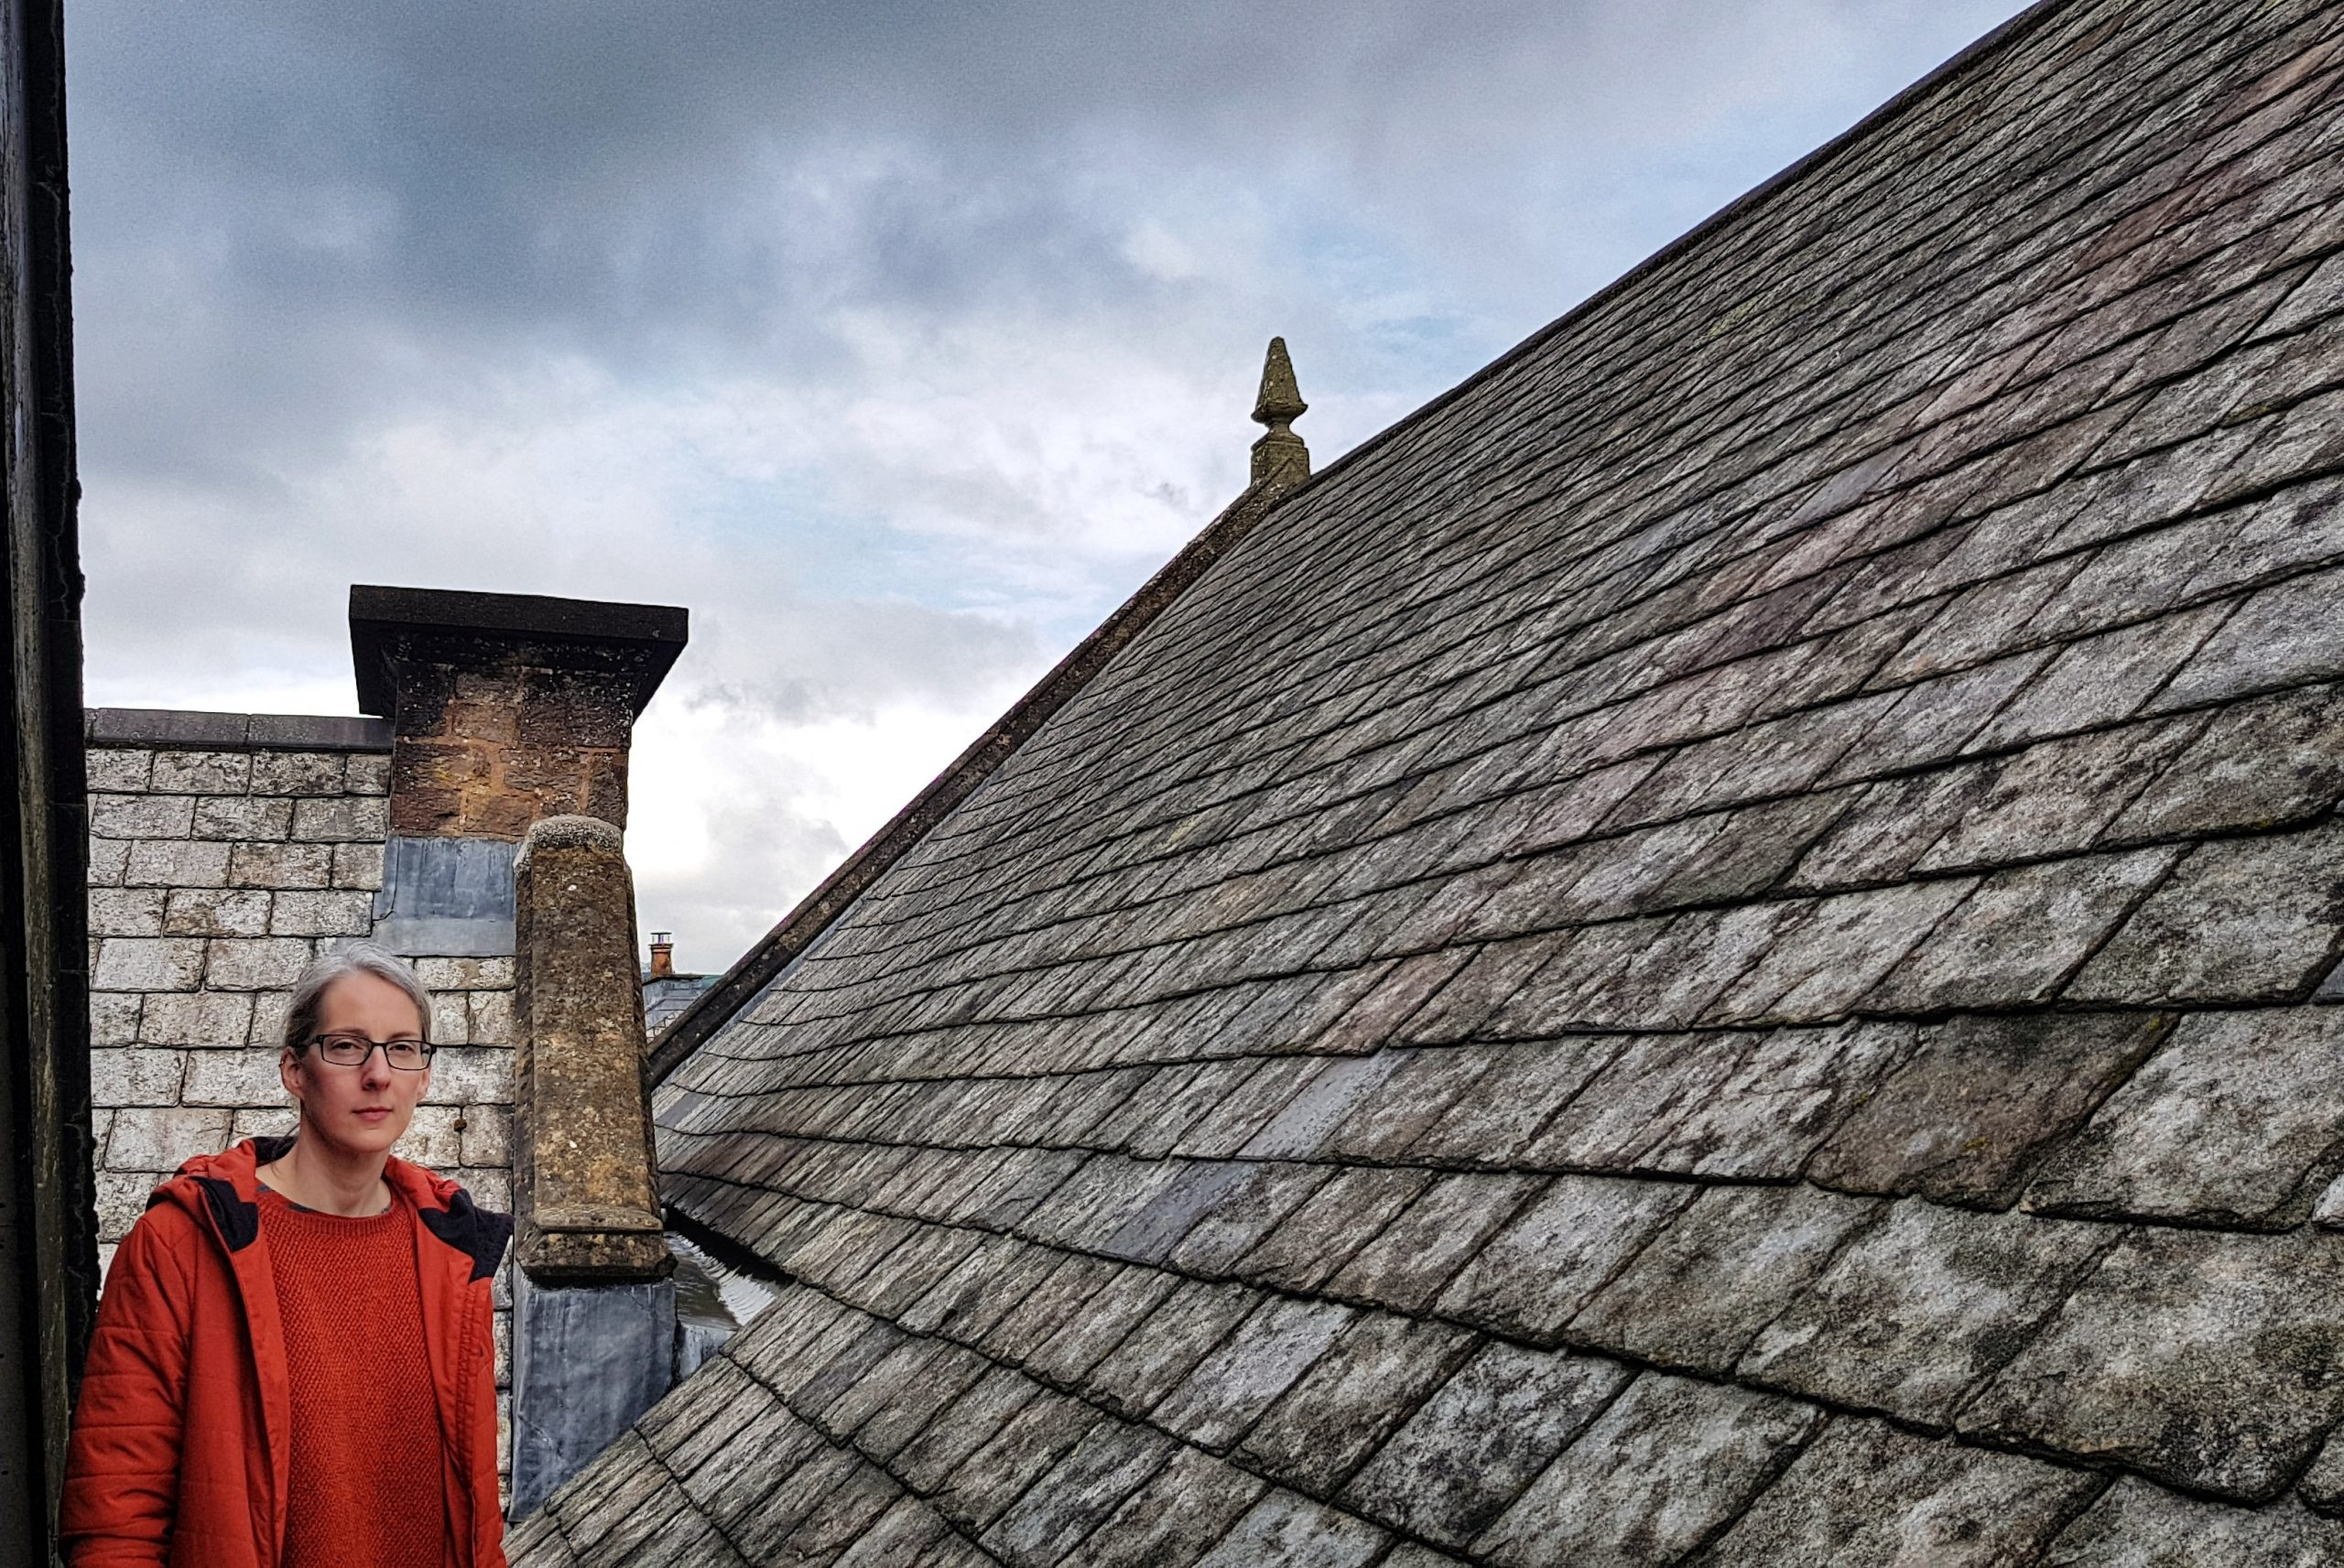 A woman standing on the roof of the museum